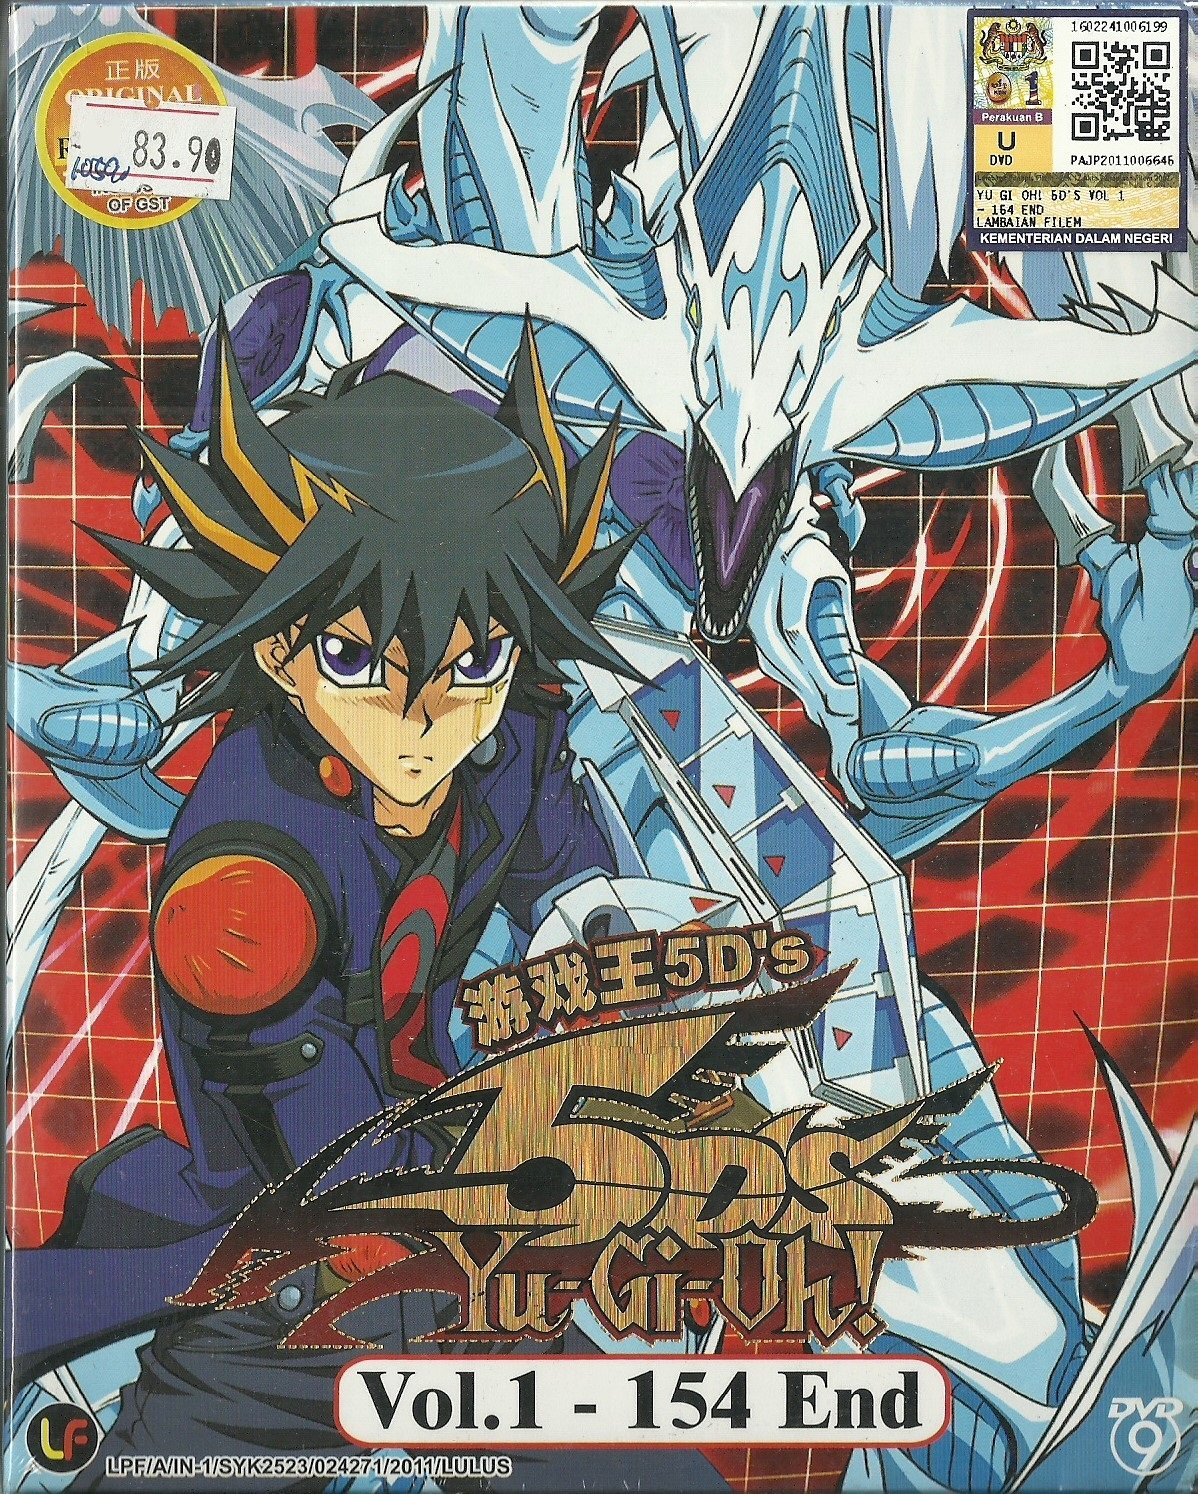 Yu gi oh 5ds complete anime tv series dvd box set 1 154 episodes amazon co uk katsumi ono dvd blu ray